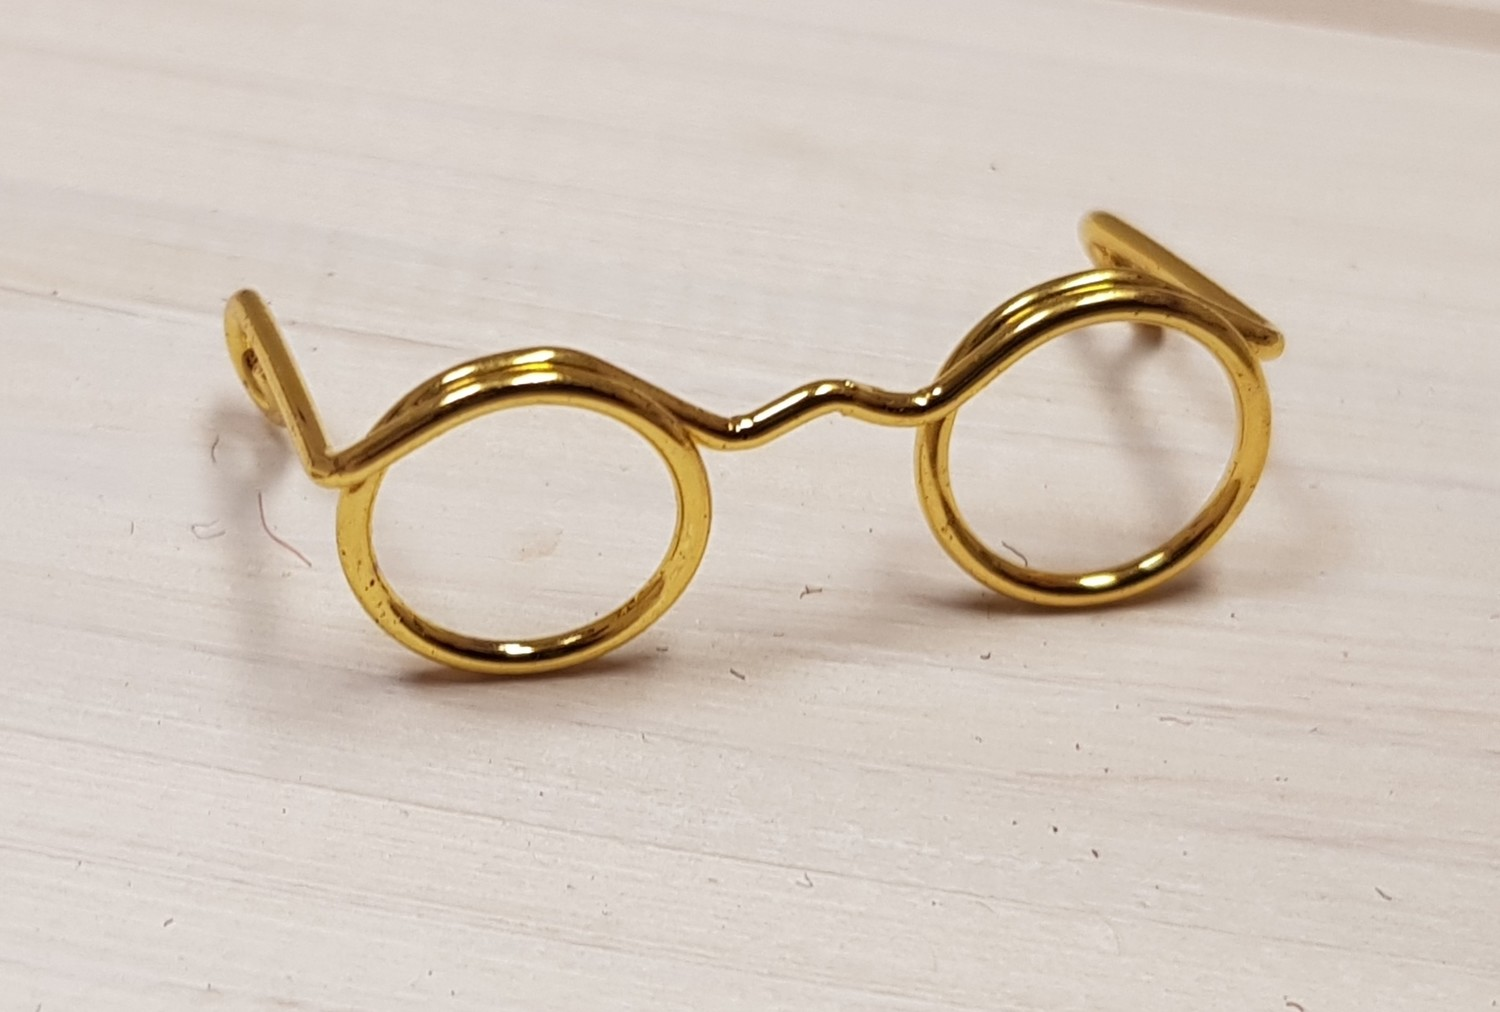 Novelty Glasses, W: 25 mm, inner hole size 9 mm, gold, 10pcs